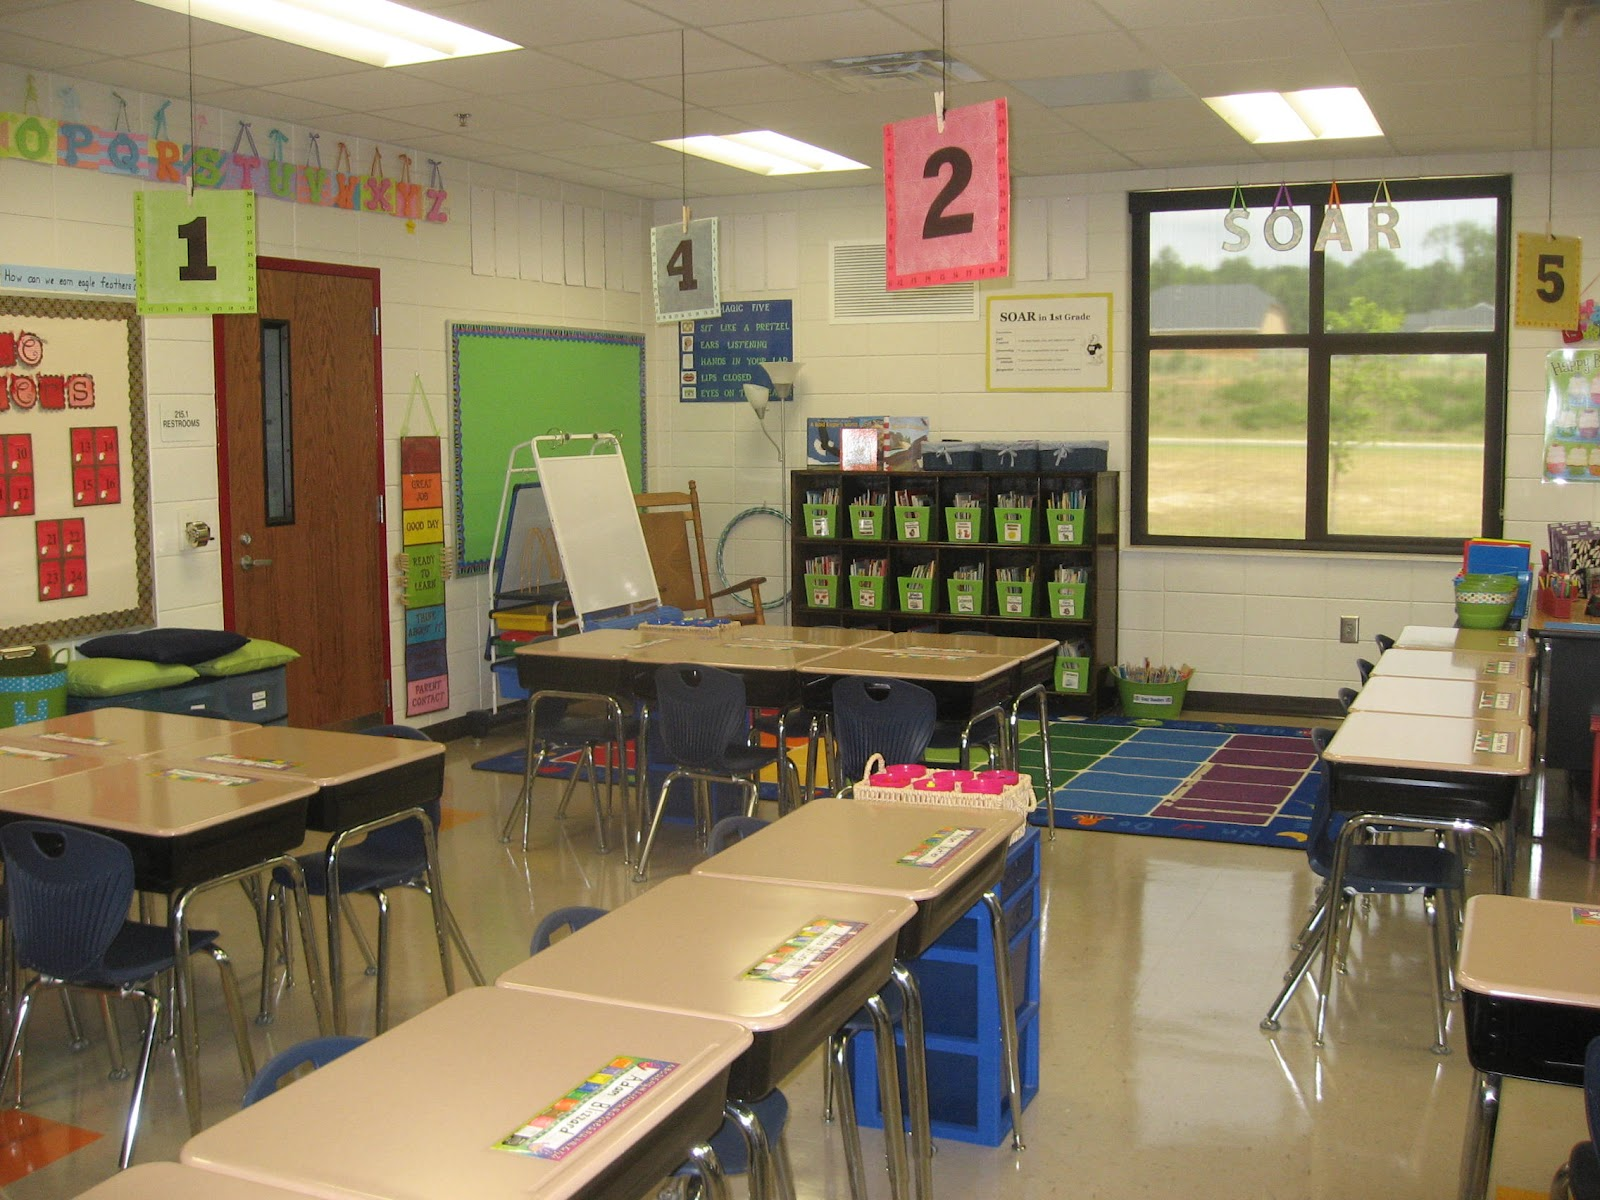 classroom decorating ideas reviewed by charlina sanie on rating 4 5